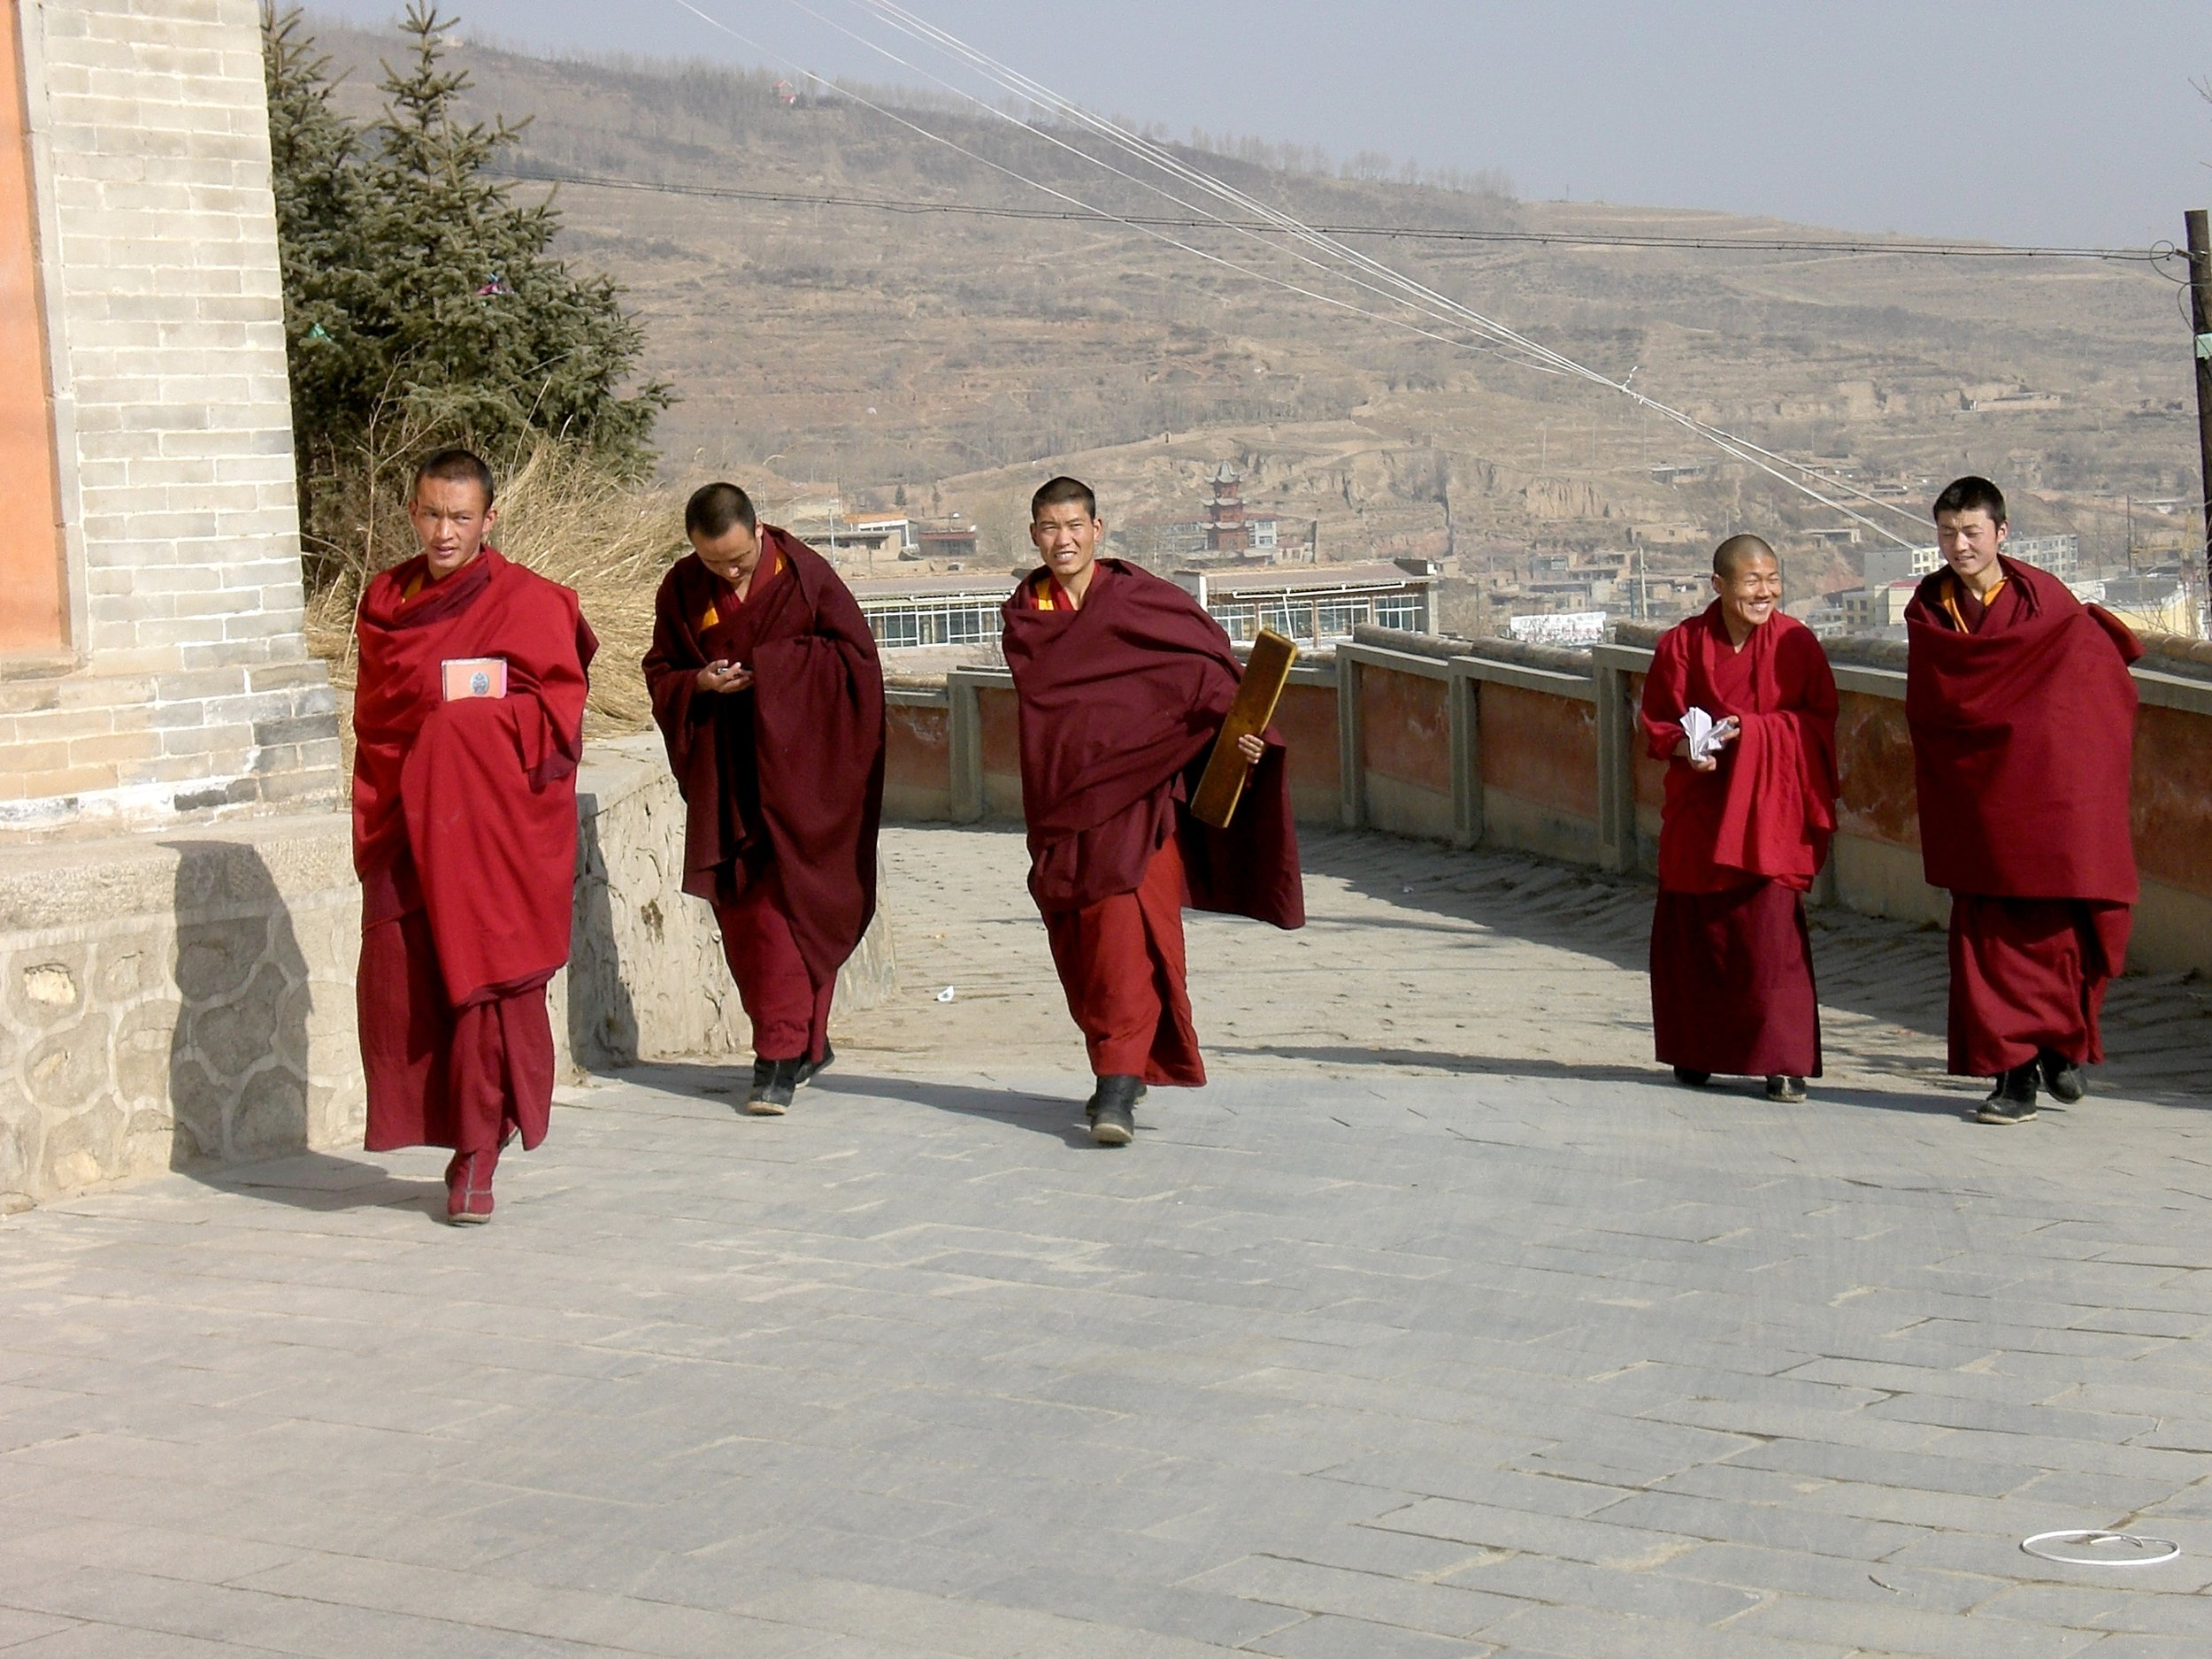 Tibetan monks at the Kumbum Ta'er monastery in Xining, capital of Qinghai province, China. Photo: (C) Remko Tanis